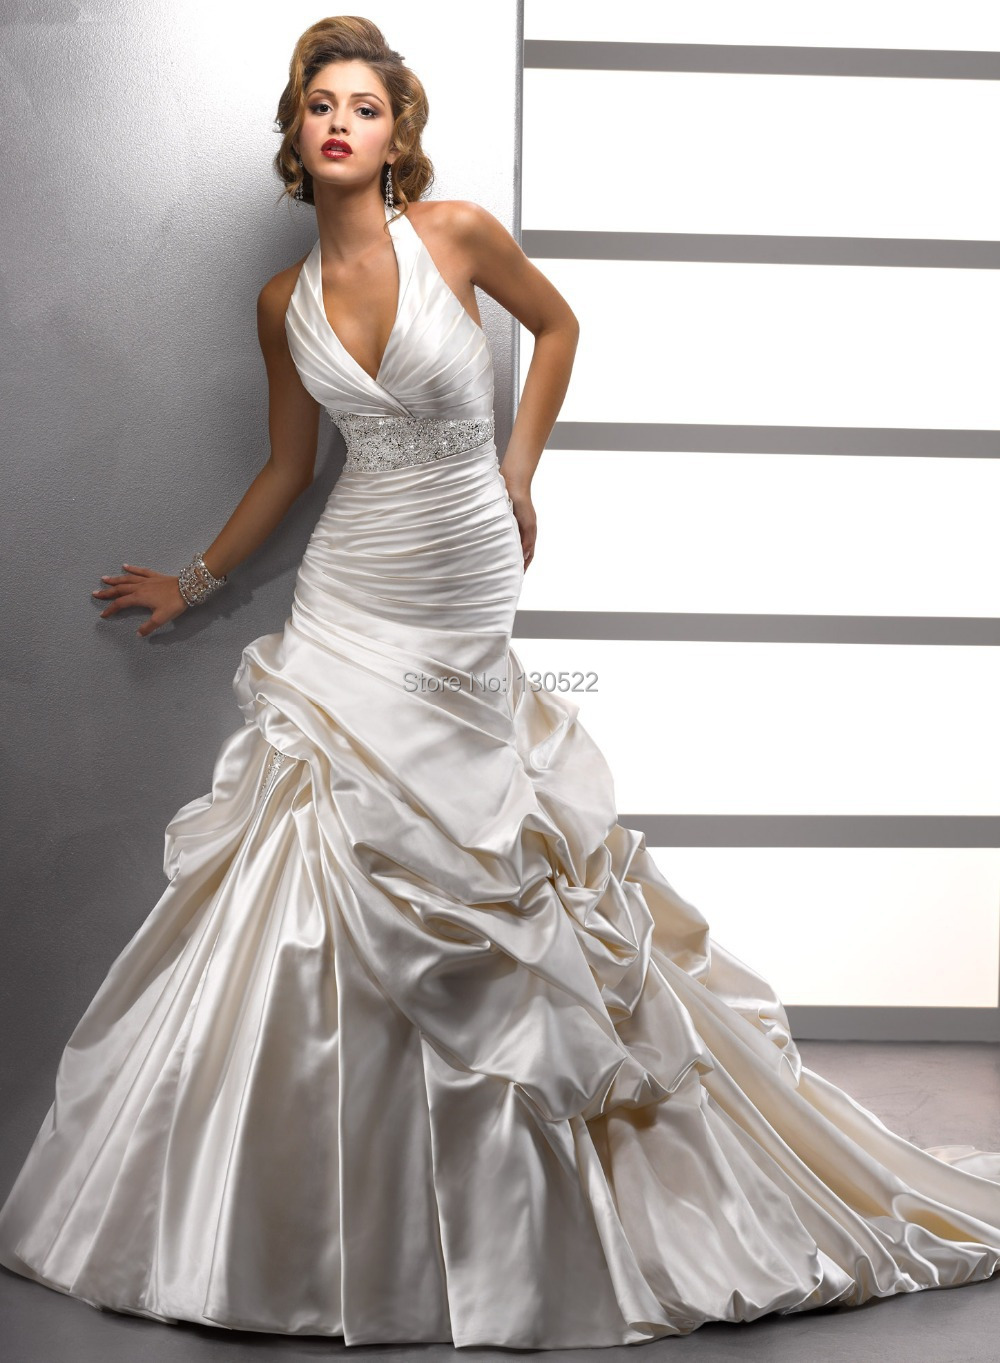 Design Your Own Wedding Dress Cocktail Dresses 2016